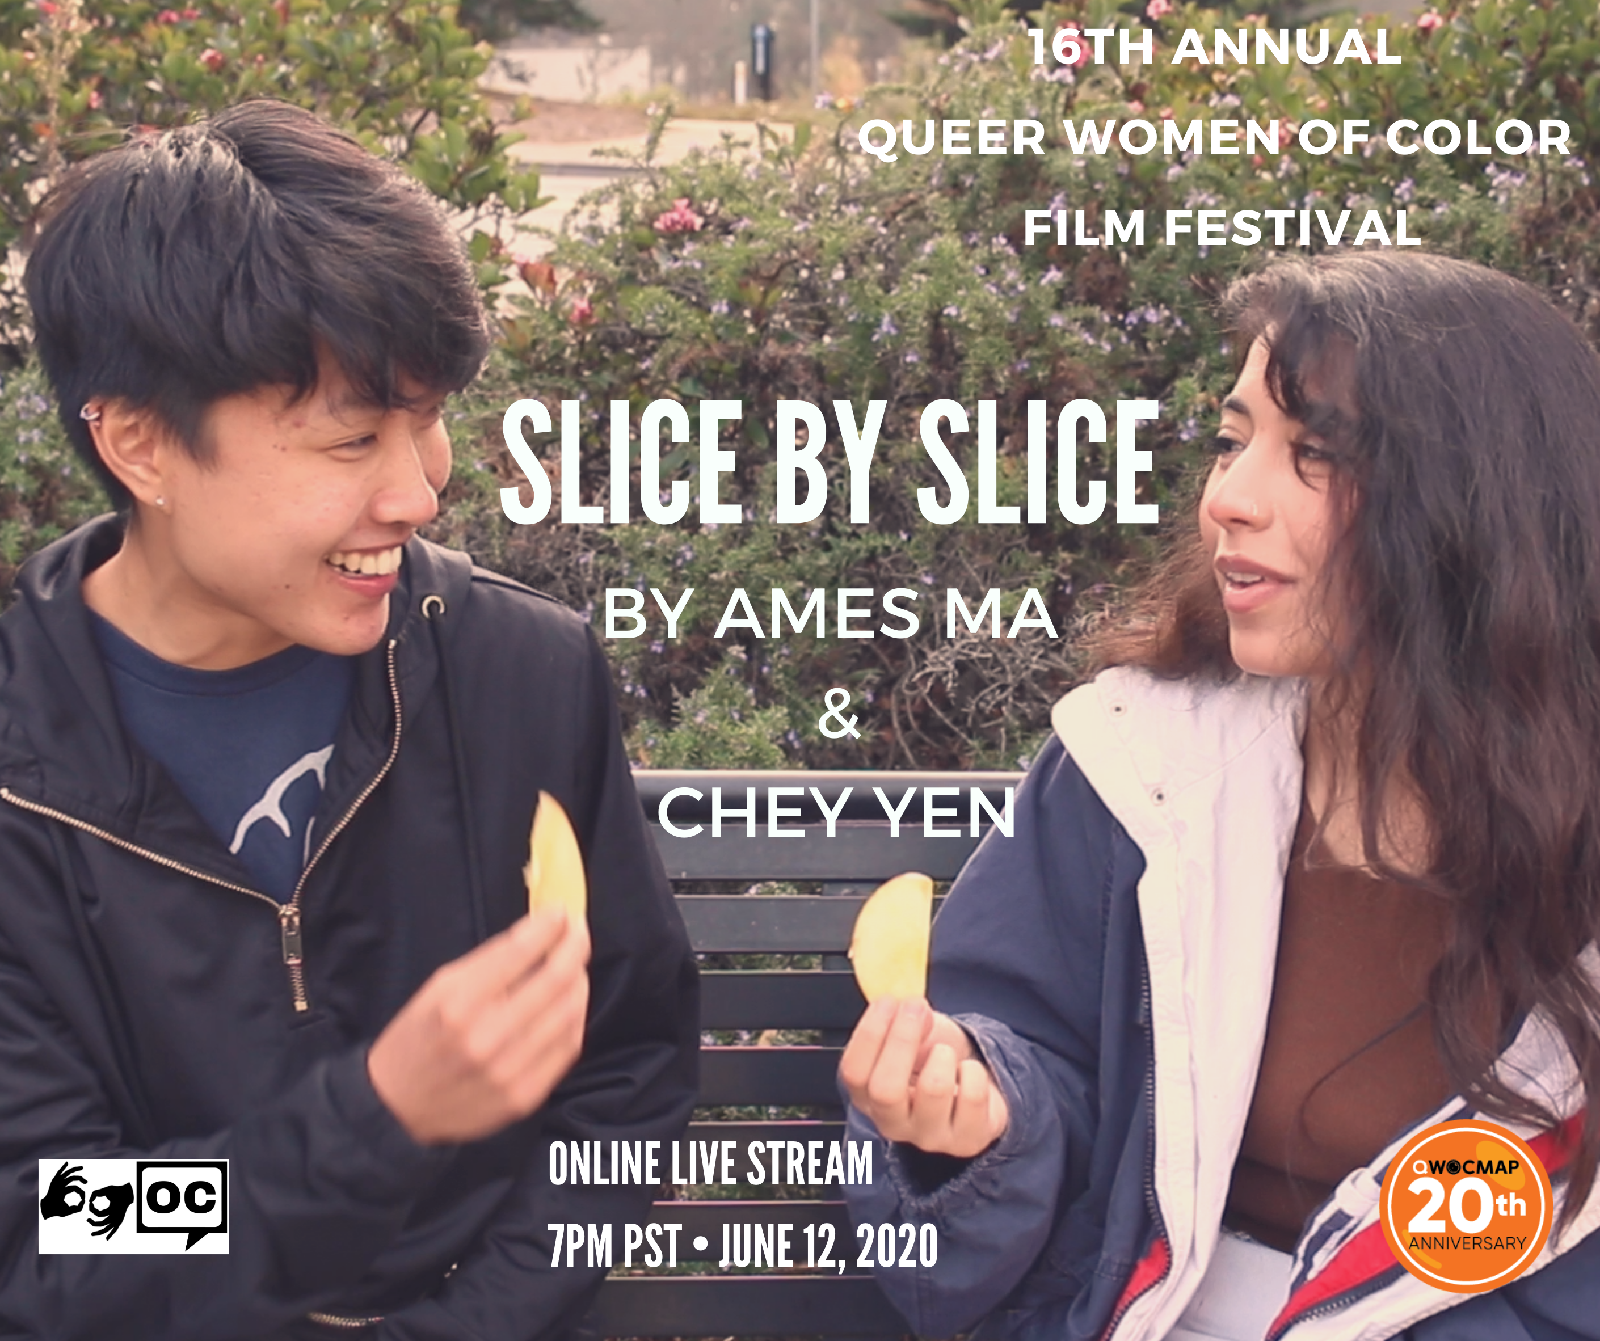 A young Chinese nonbinary person with medium brown skin, and a young Latinx woman with medium brown skin sit outside. The top of the image reads 16th Annual Queer Women of Color Film Festival. Text below reads SLICE BY SLICE by Ames Ma and Chey Yen. The QWOCMAP logo is on the bottom right, the ASL and open captions logo are on the bottom left. Text below reads ONLINE LIVE STREAM 7PM PST JUNE 12, 2020.